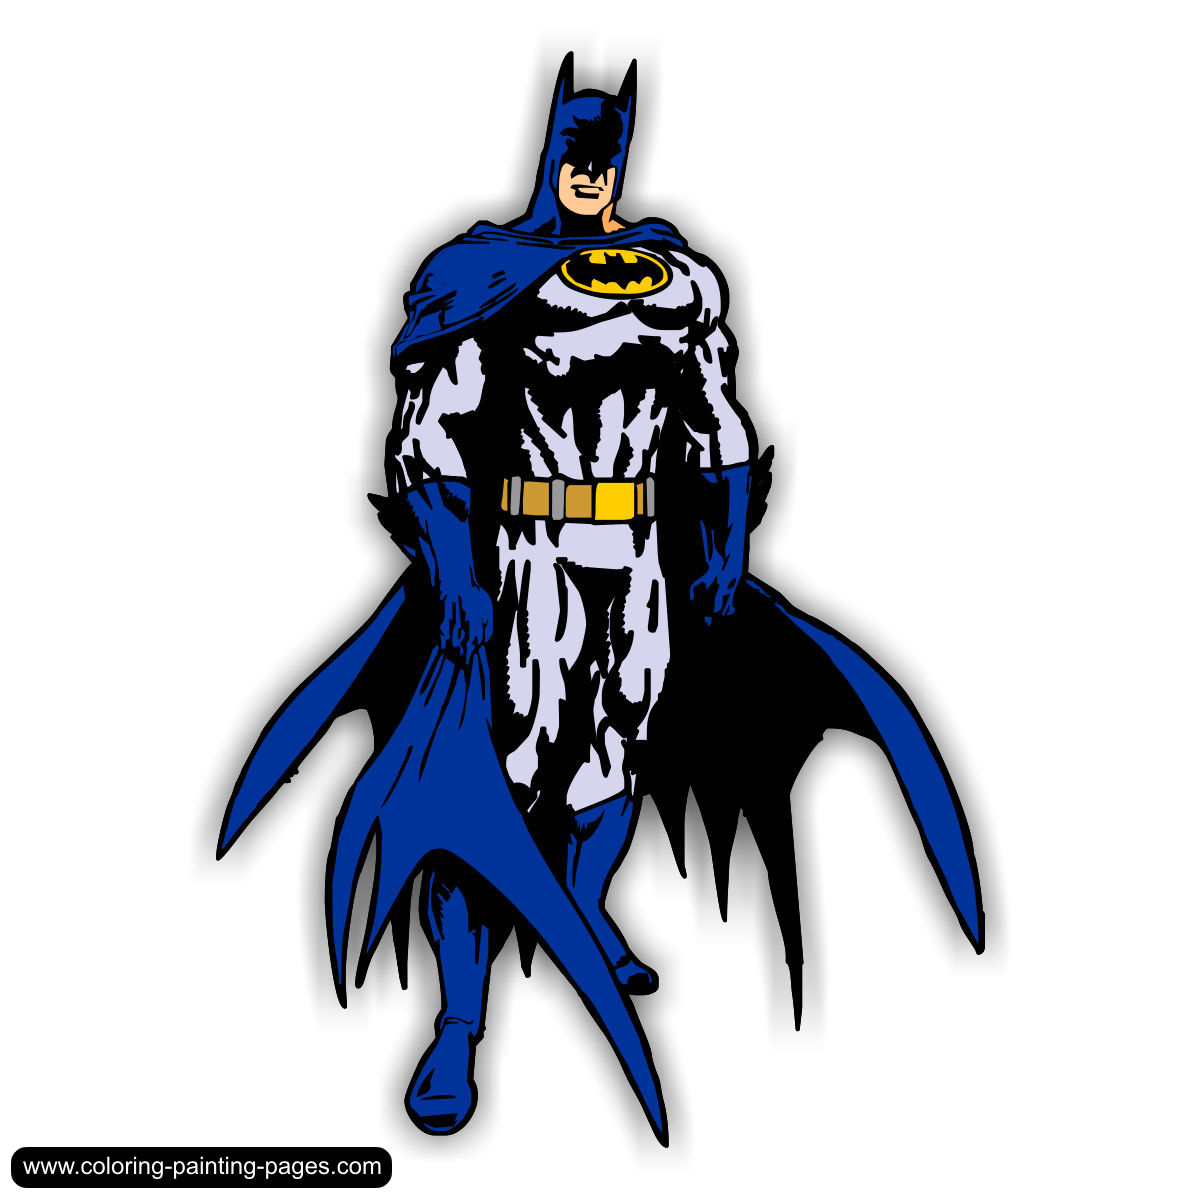 Batman vector images free vector for free download about